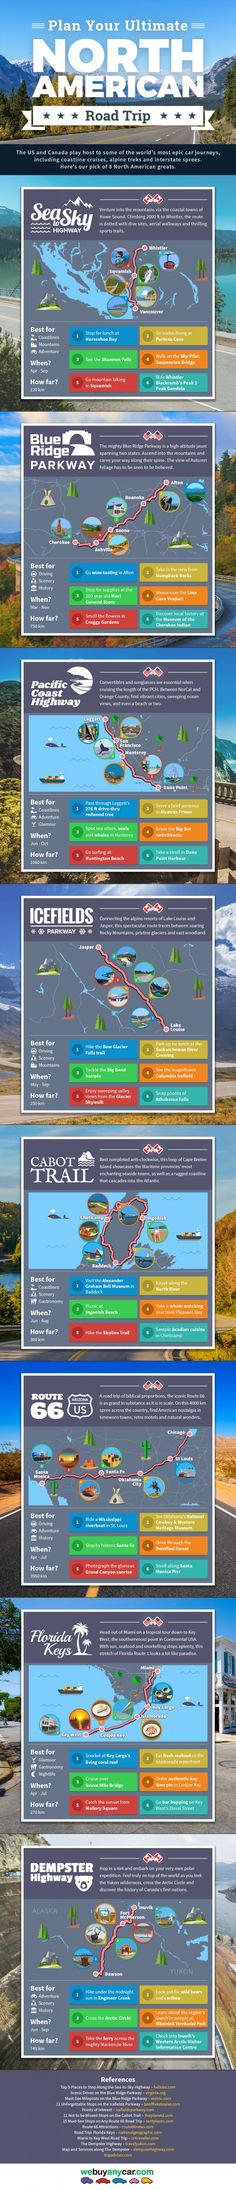 Plan Ultimate North American Road Trip Infographic #Infographics